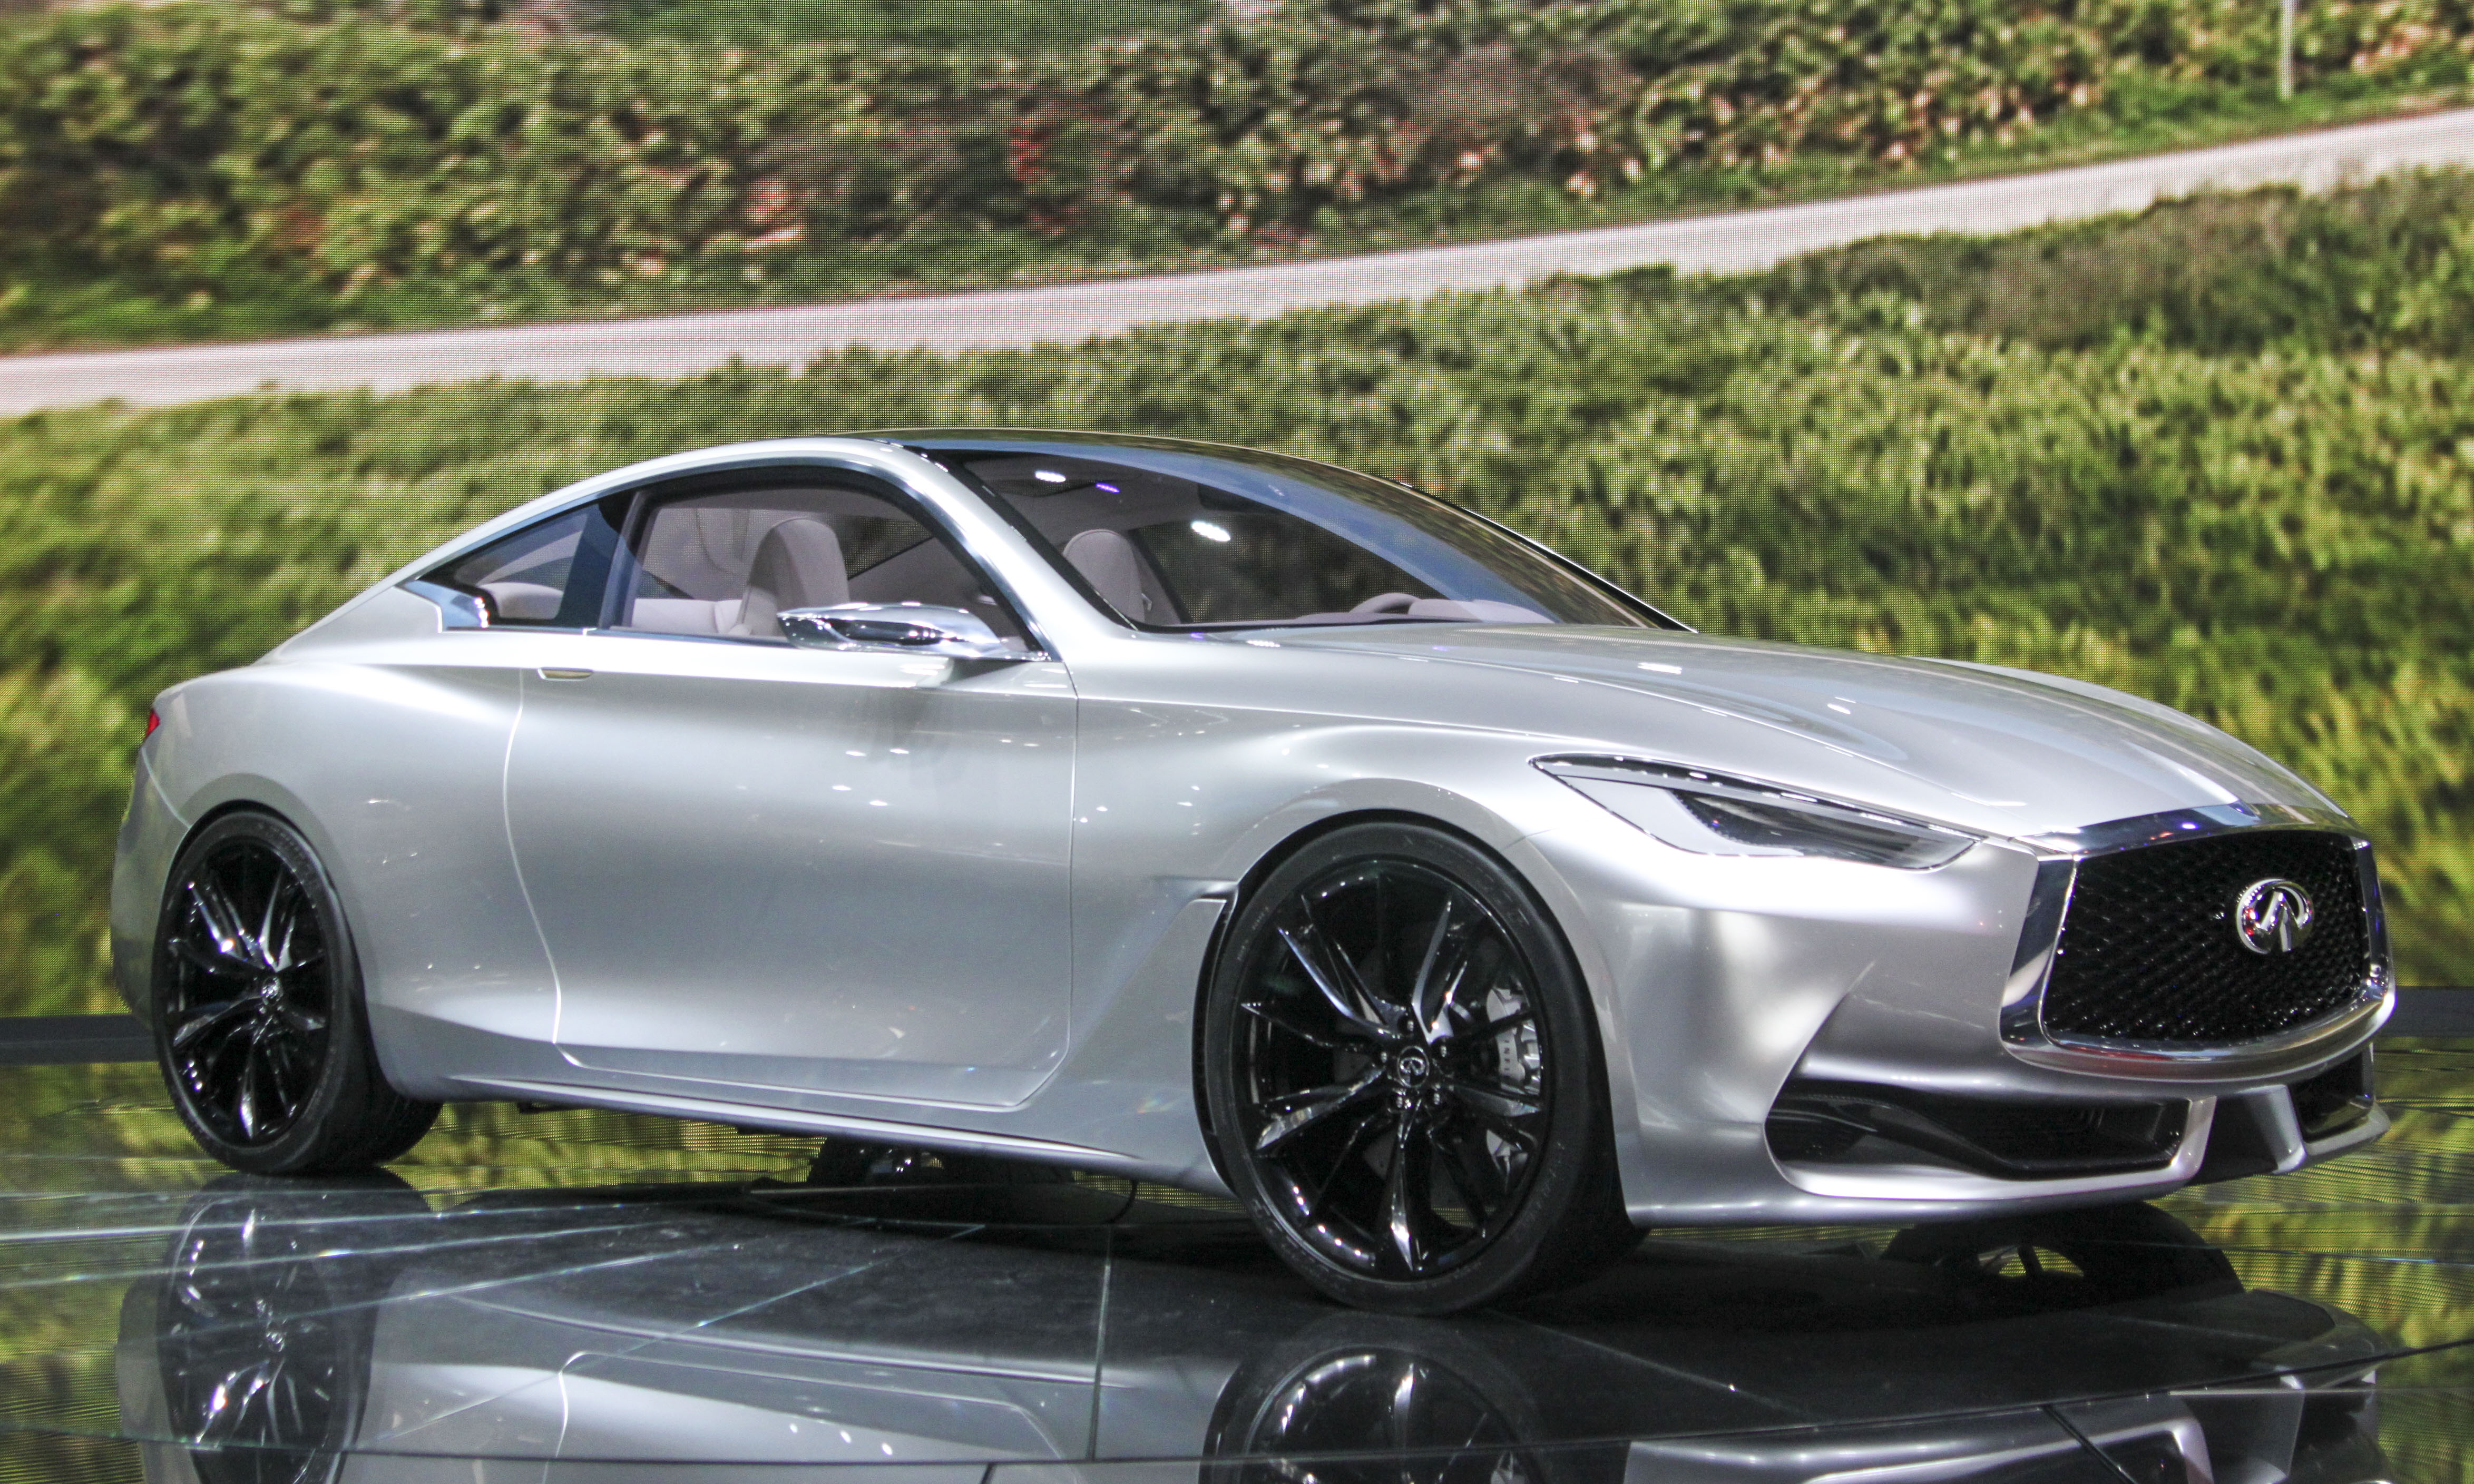 Infiniti Q60 Concept (c) Perry Stern